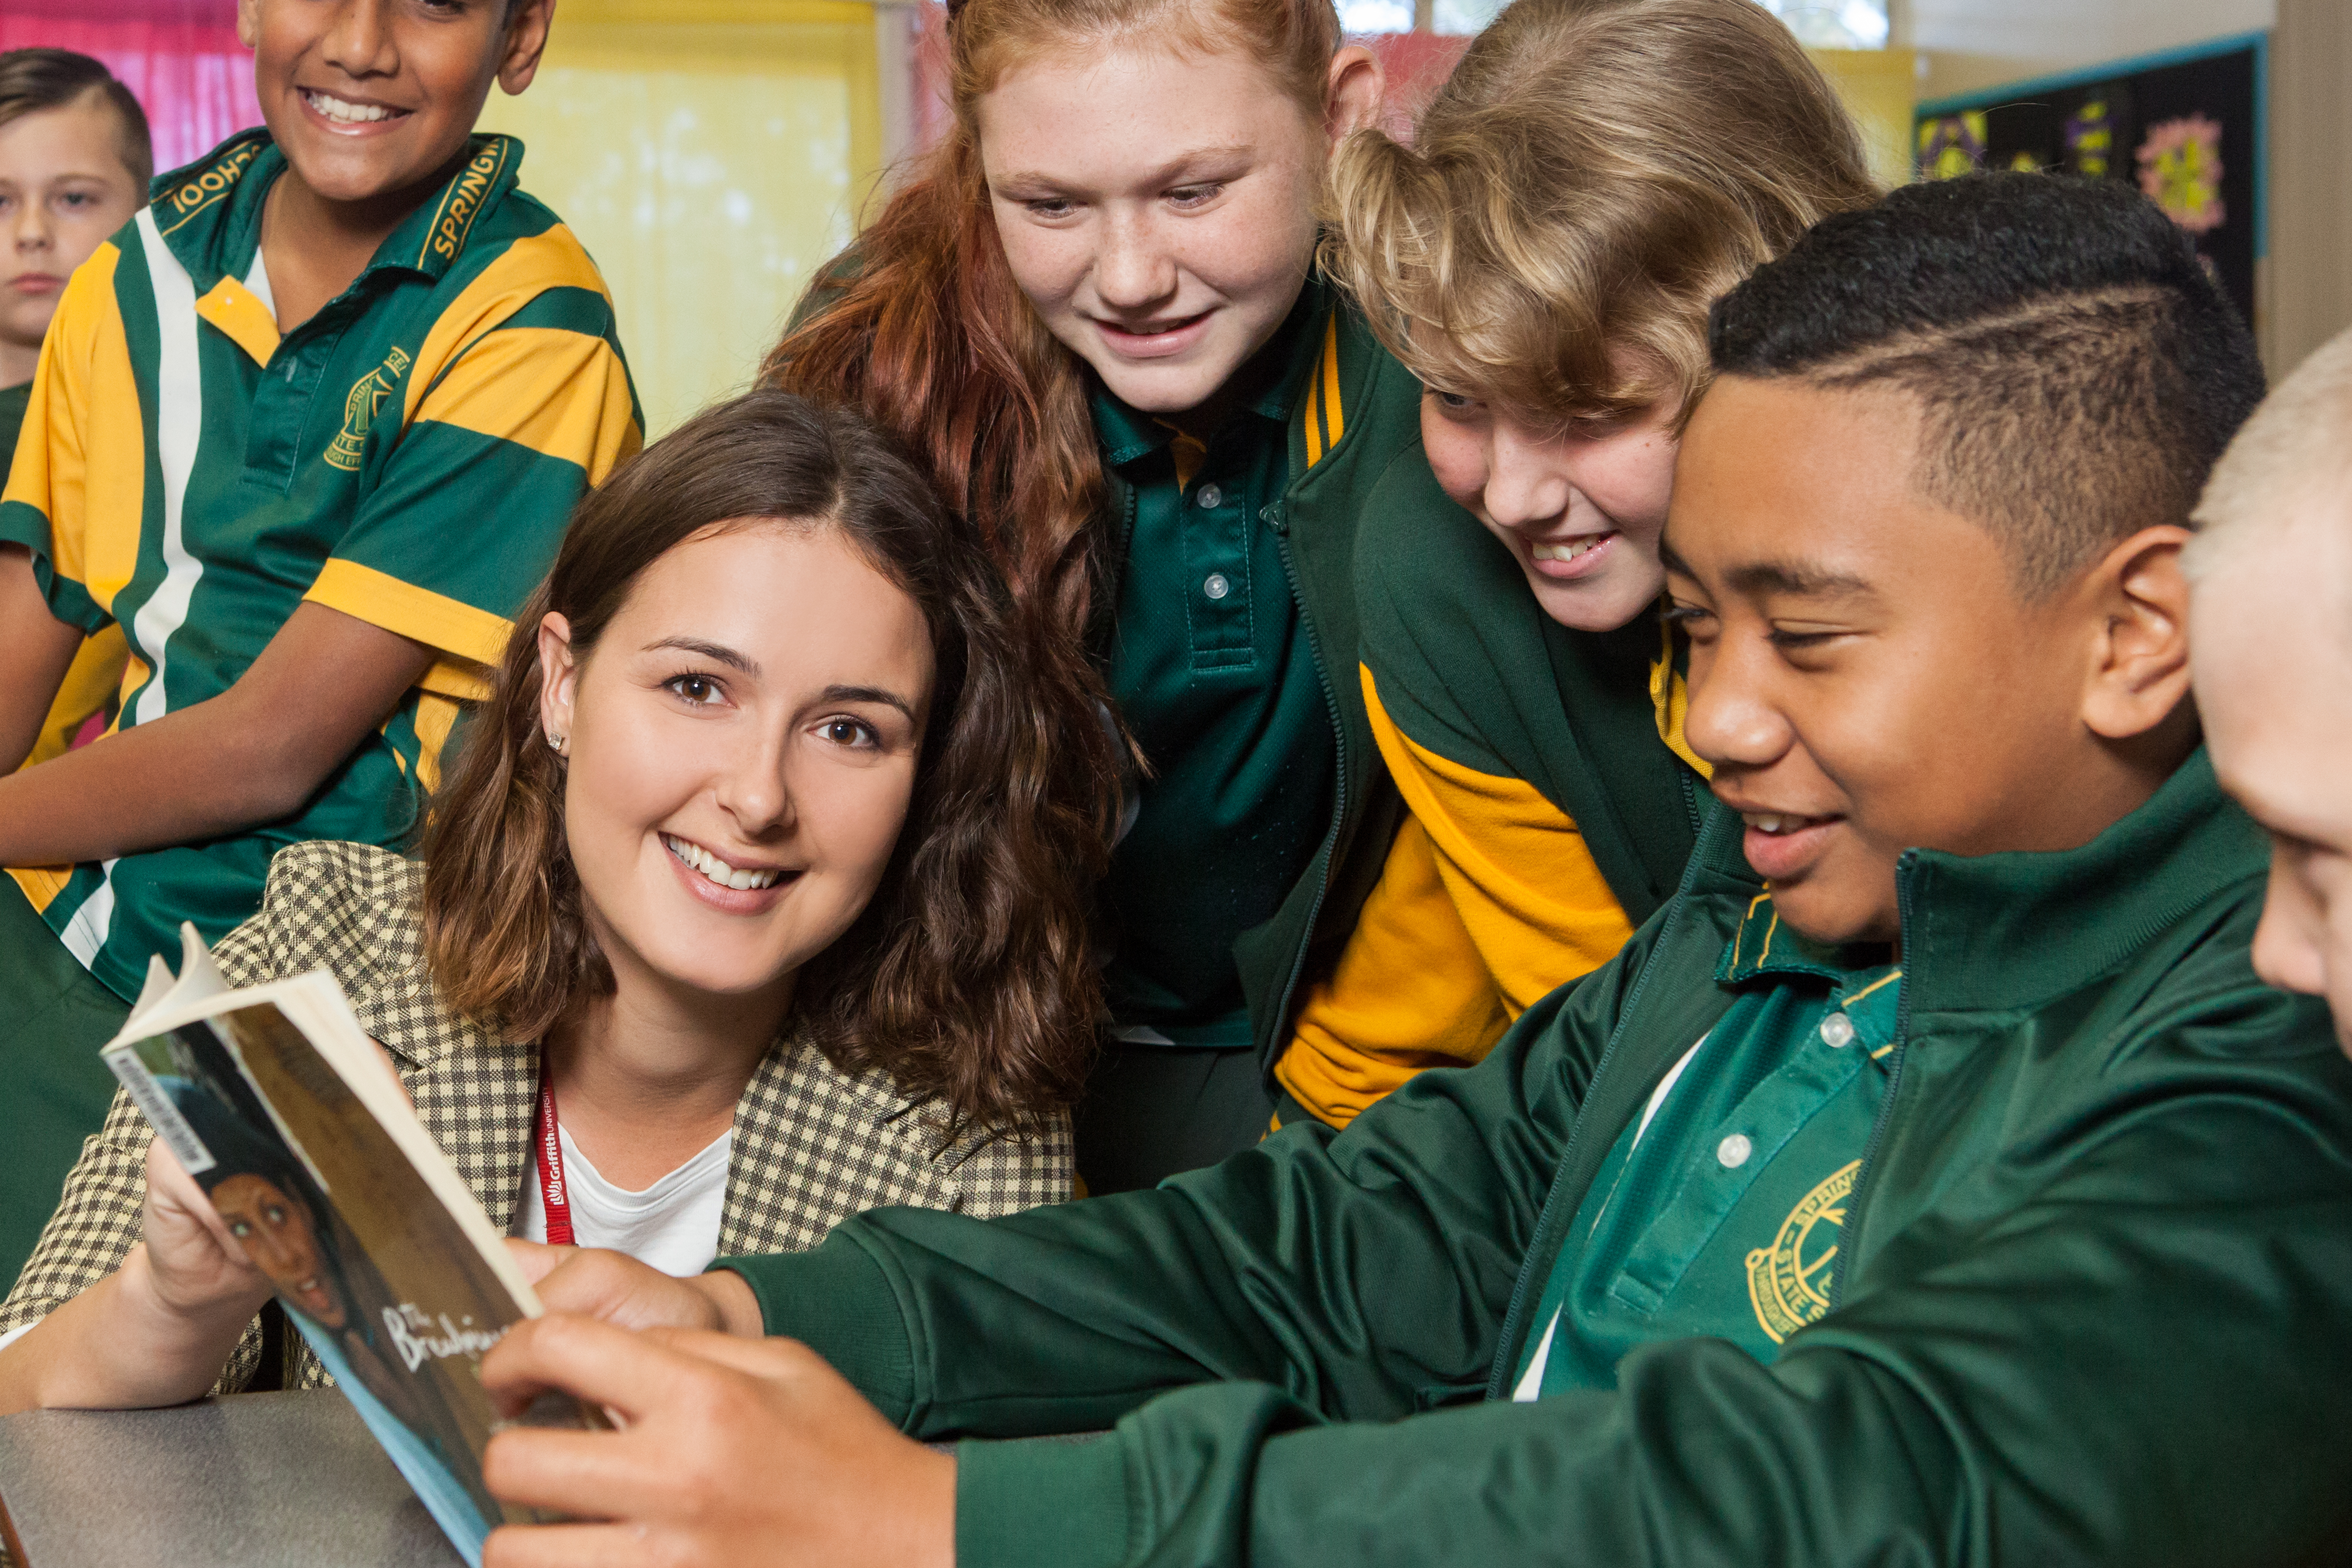 Bachelor of Education (Primary) graduate Danielle Nash is working full-time at Springwood Central State School in Logan.